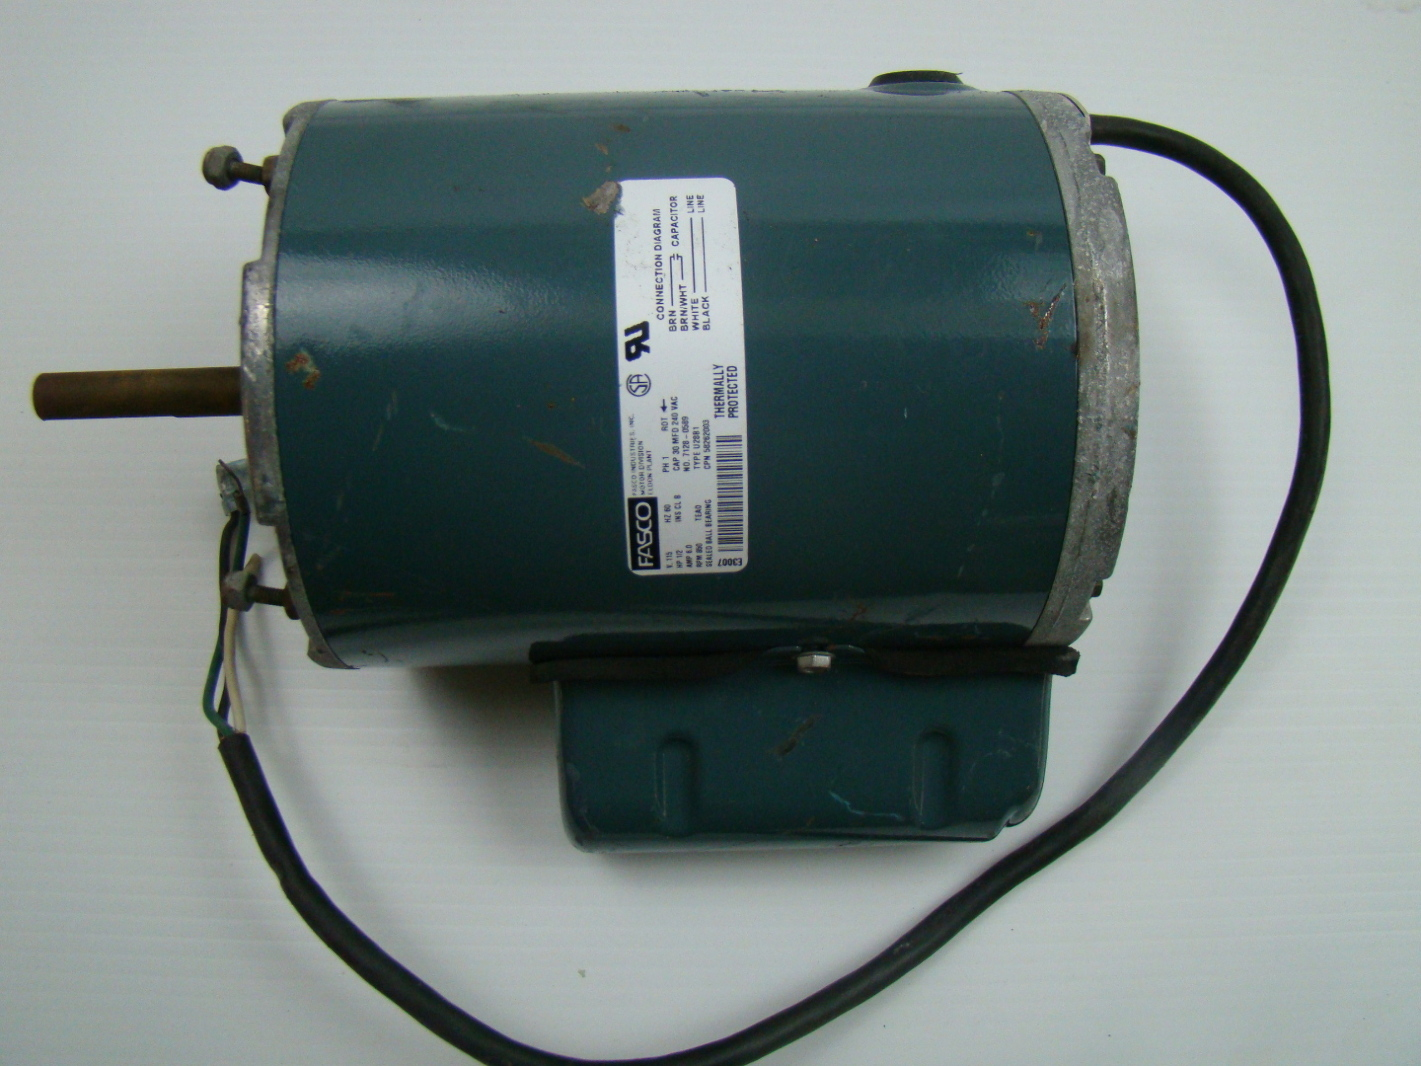 Fasco 1 2 hp electric motor 115v 7128 0589 ebay for One horsepower electric motor